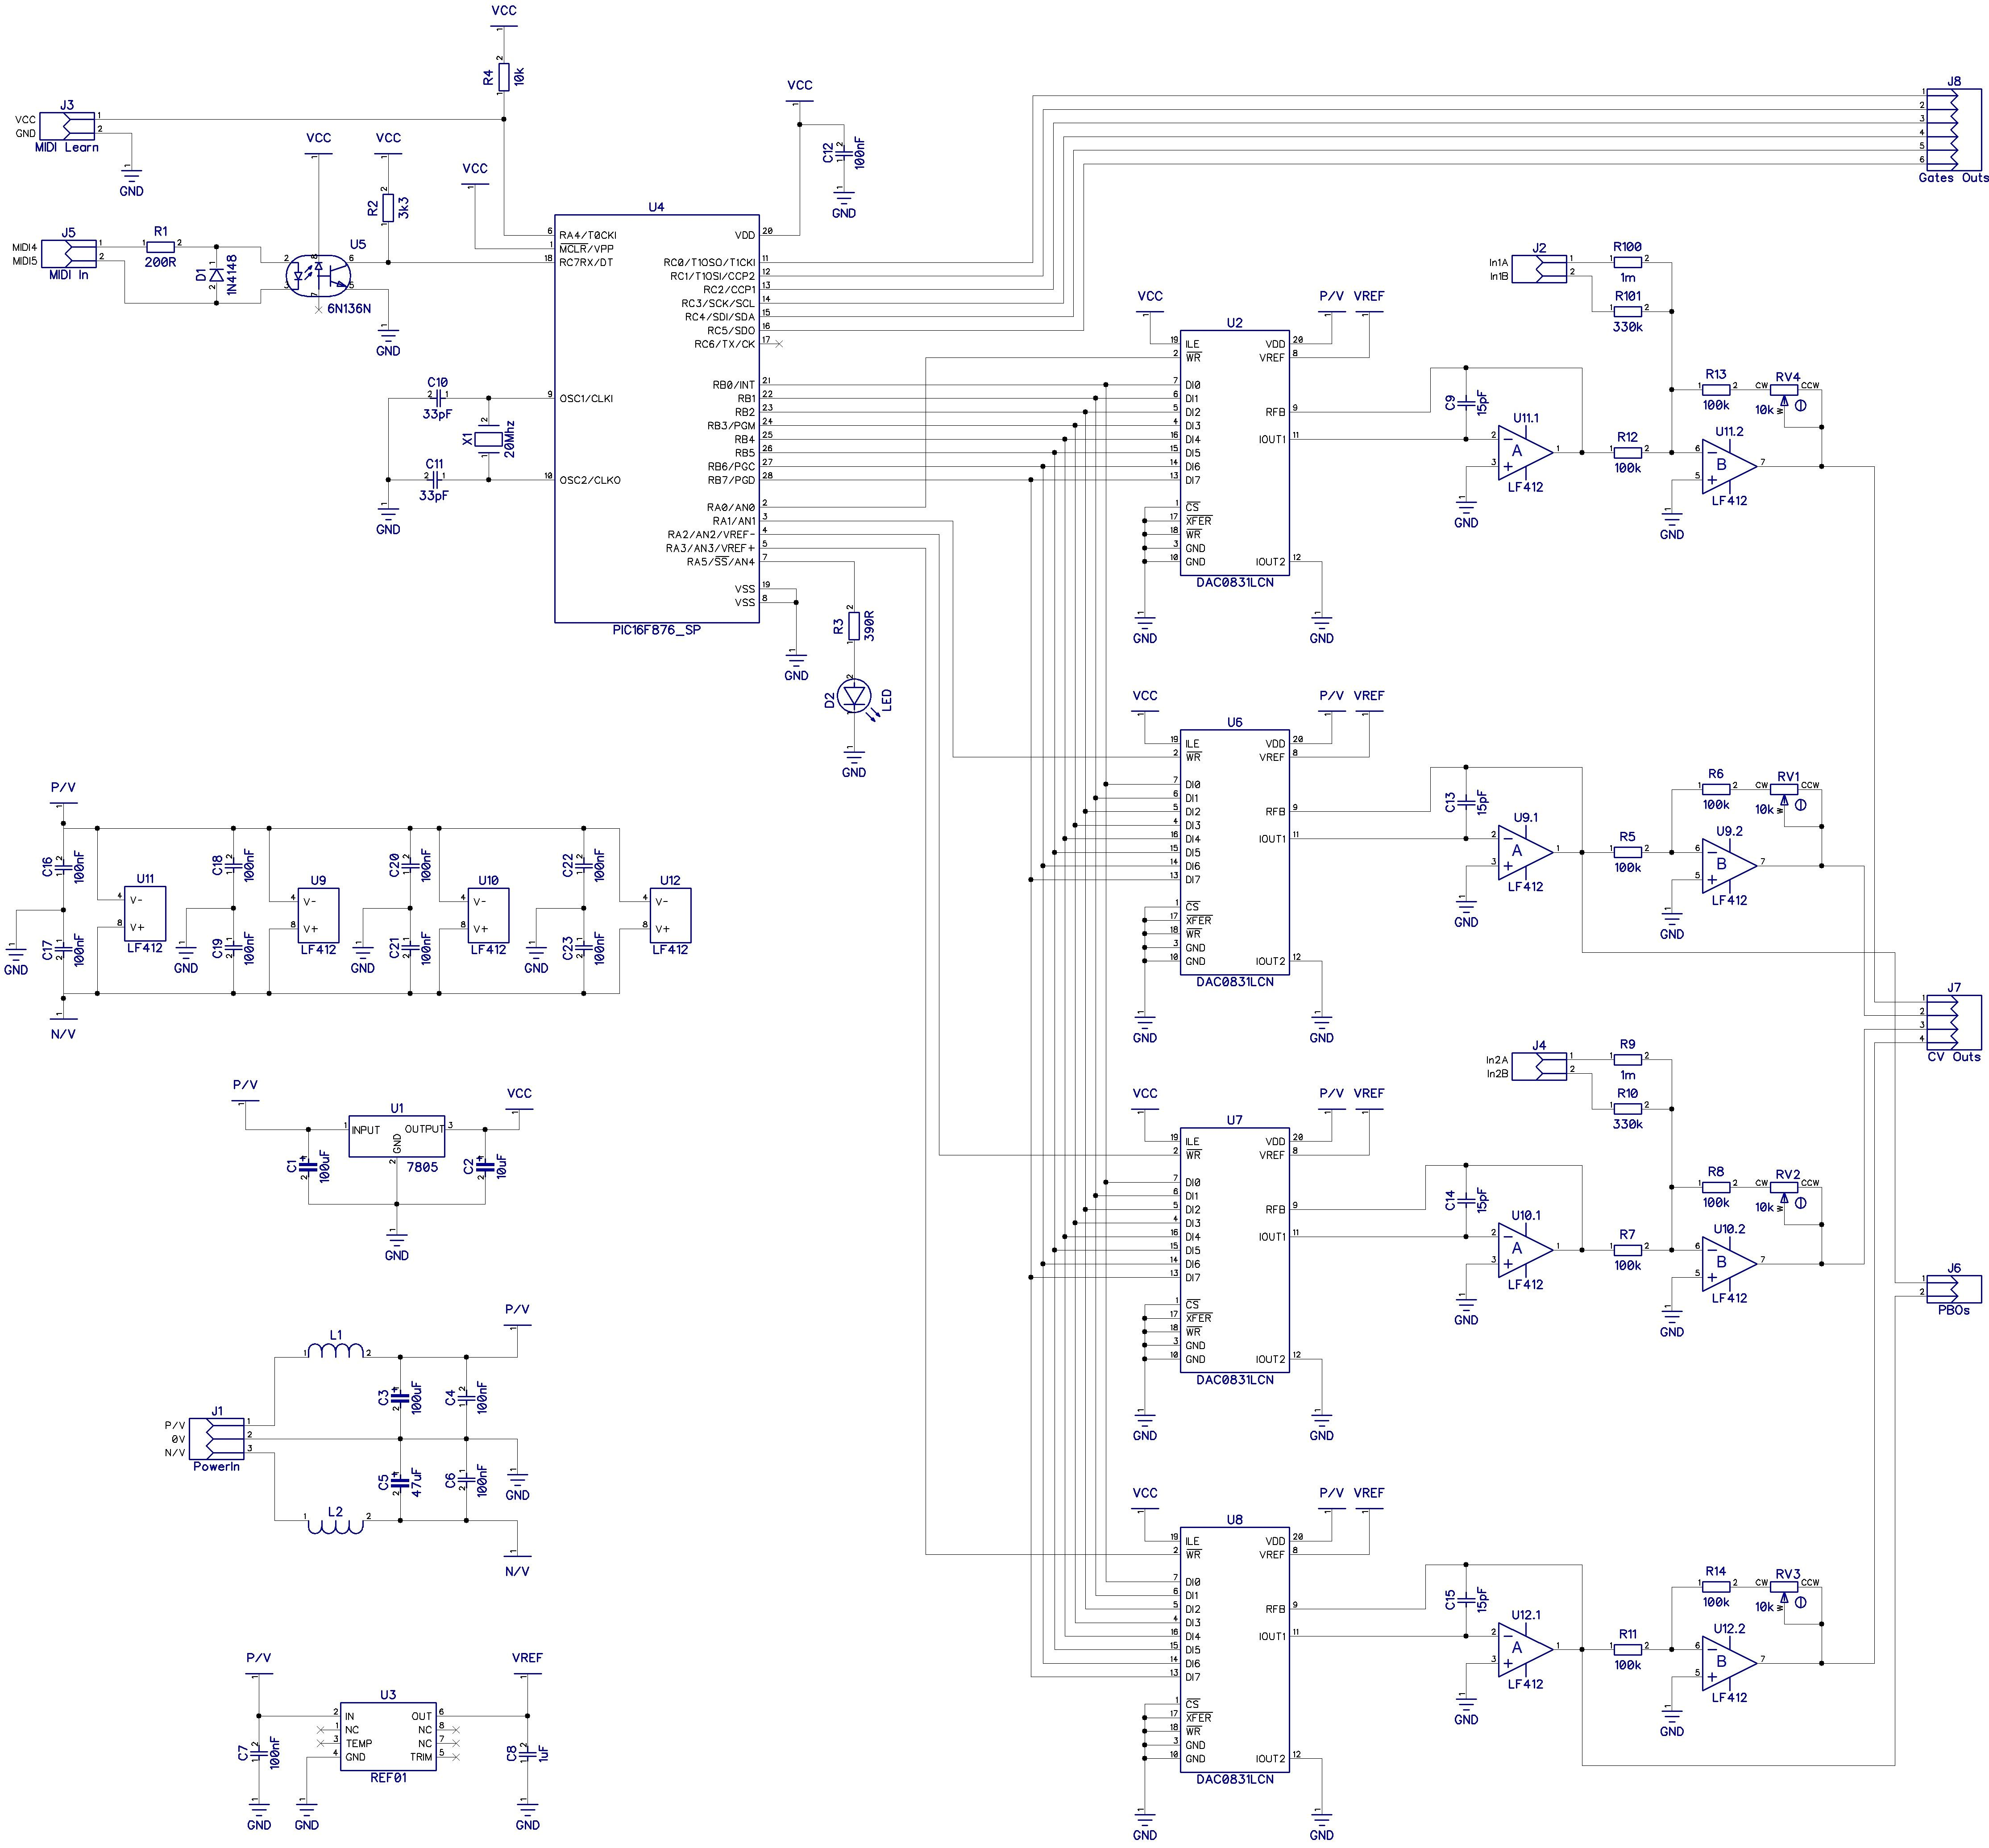 Midi To Cv Gate Interface Mcv 876 Schematics